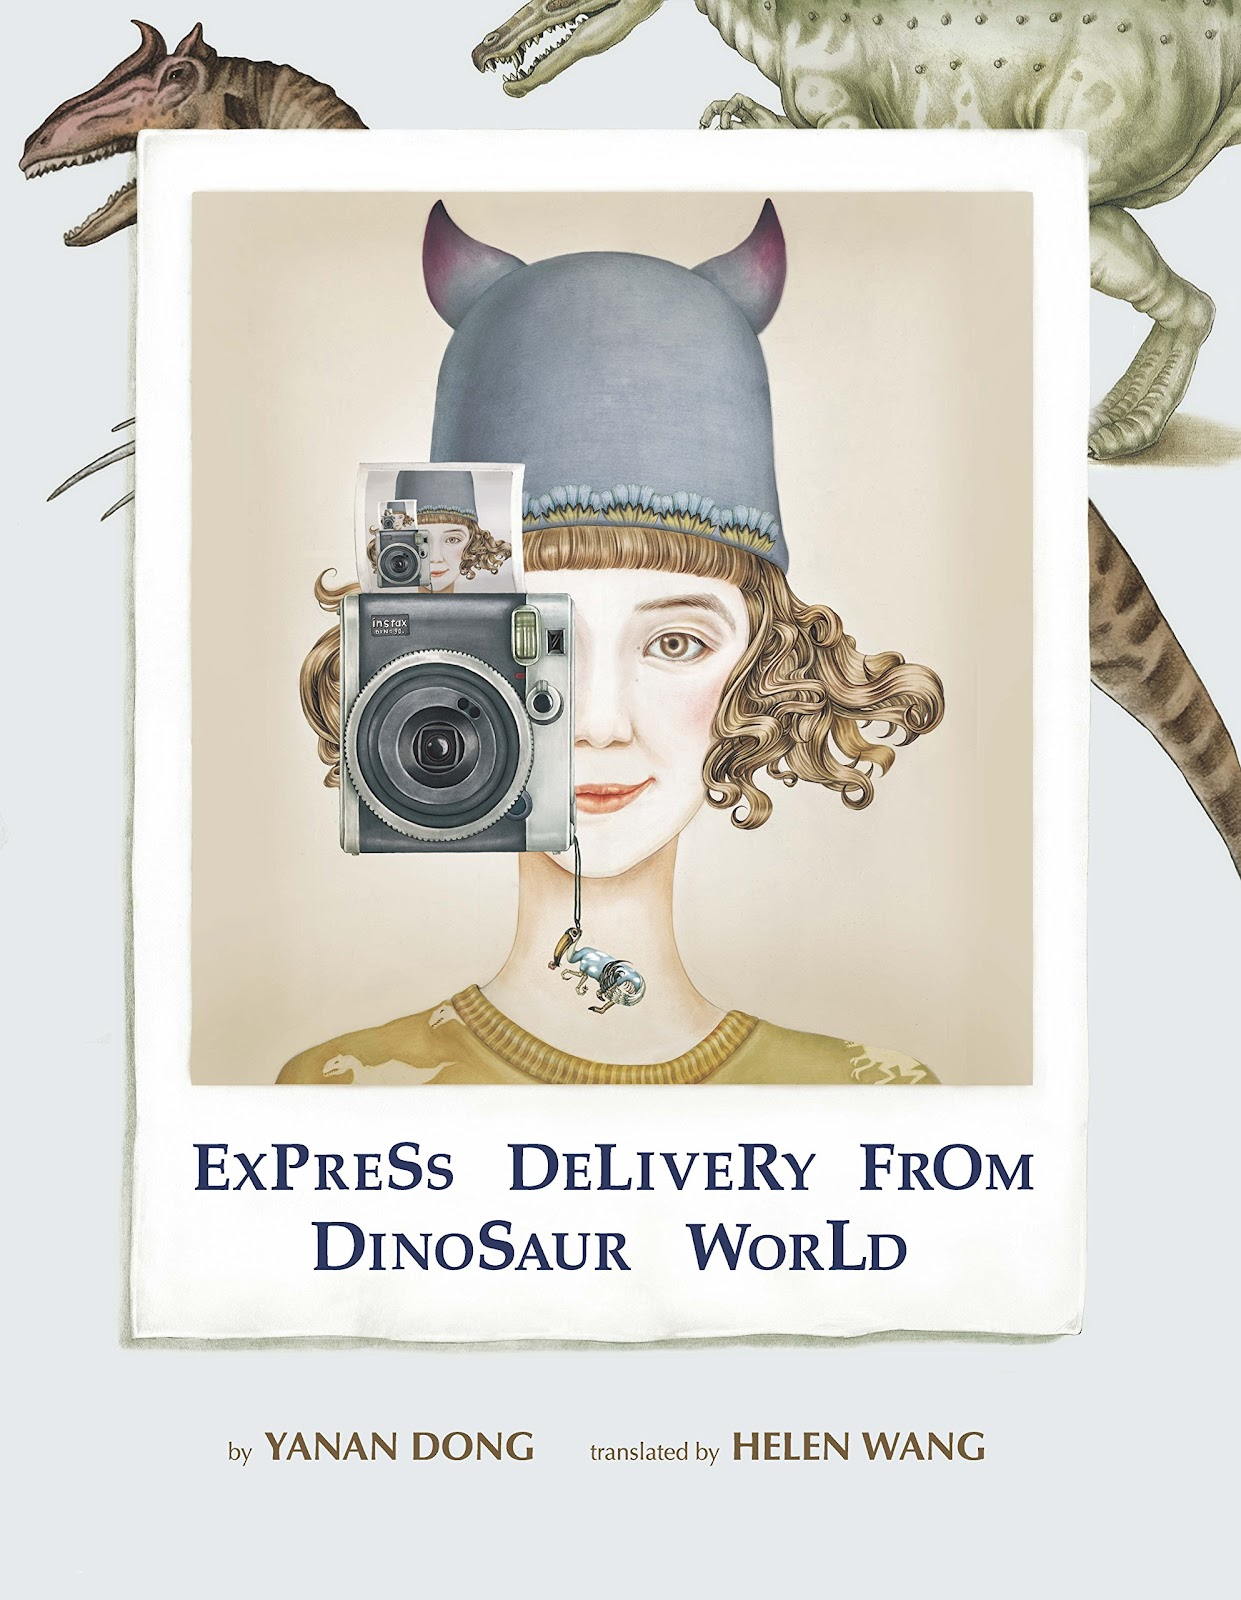 Amazon.com: Express Delivery from Dinosaur World (9781945295003): Yanan  Dong, Helen Wang: Books